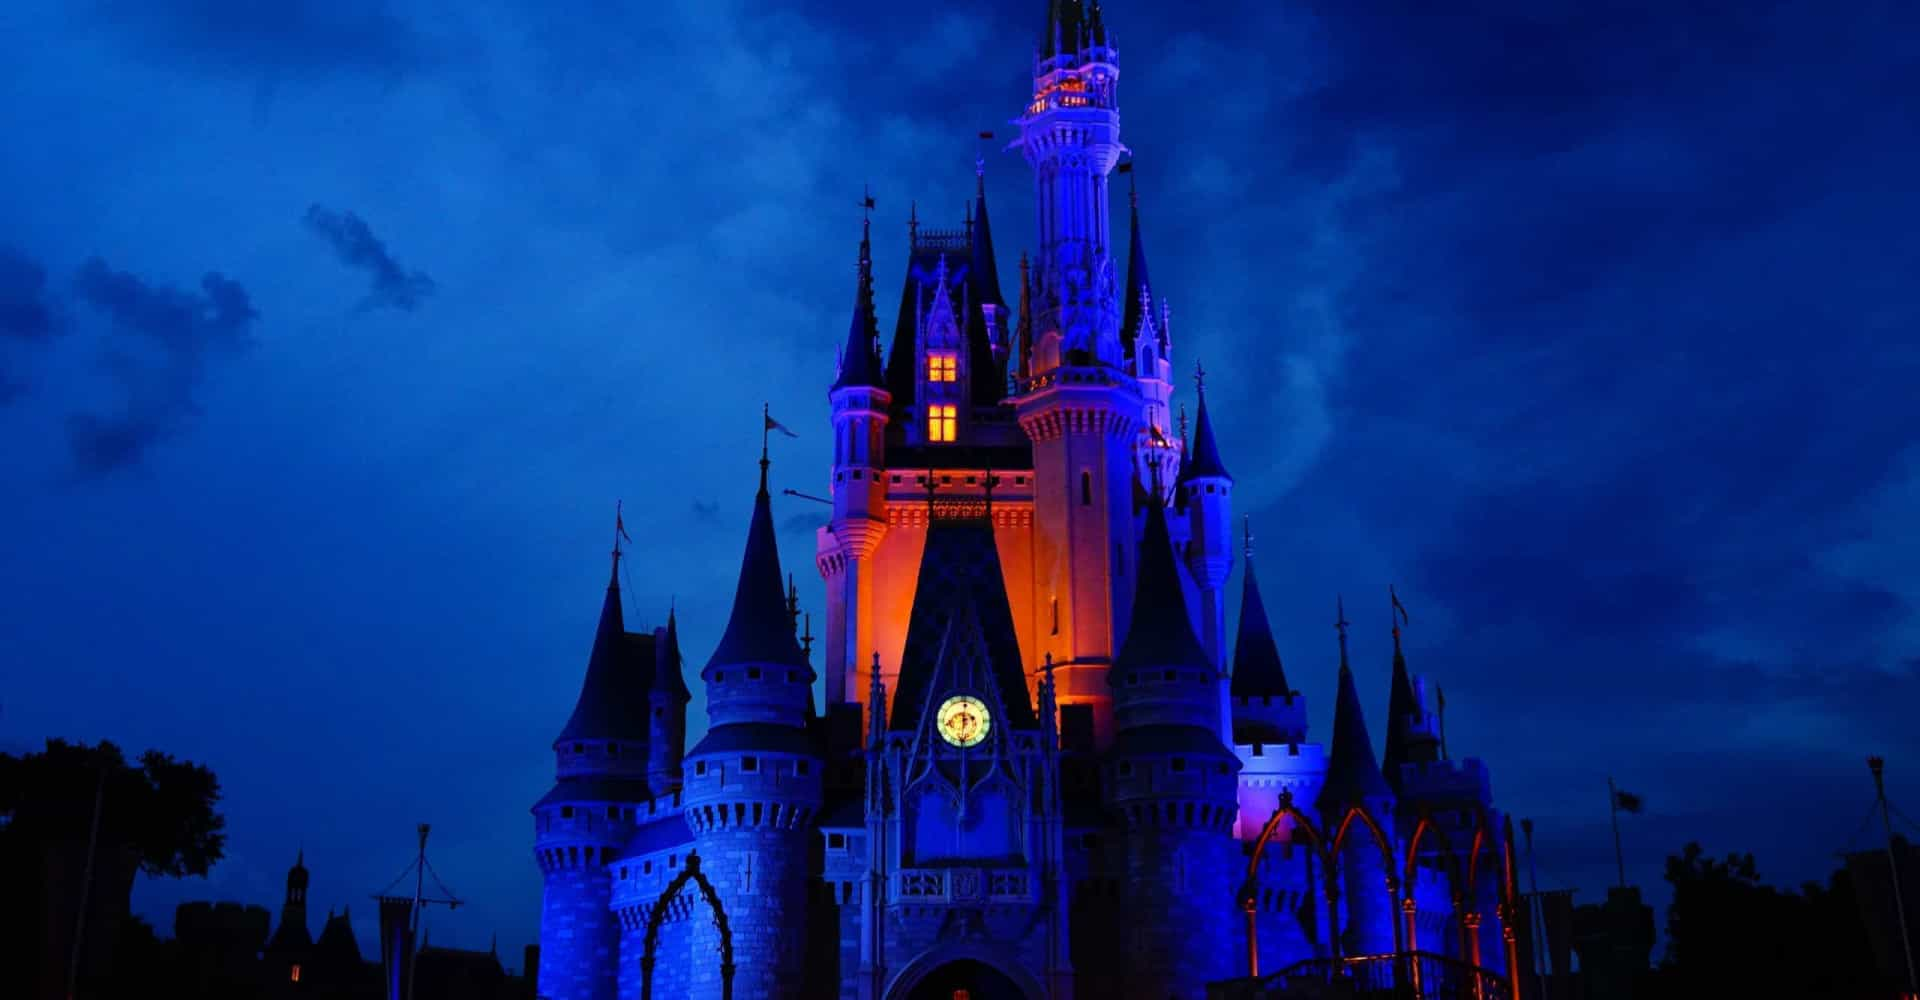 95 years of magic: Fascinating facts you didn't know about Disney parks